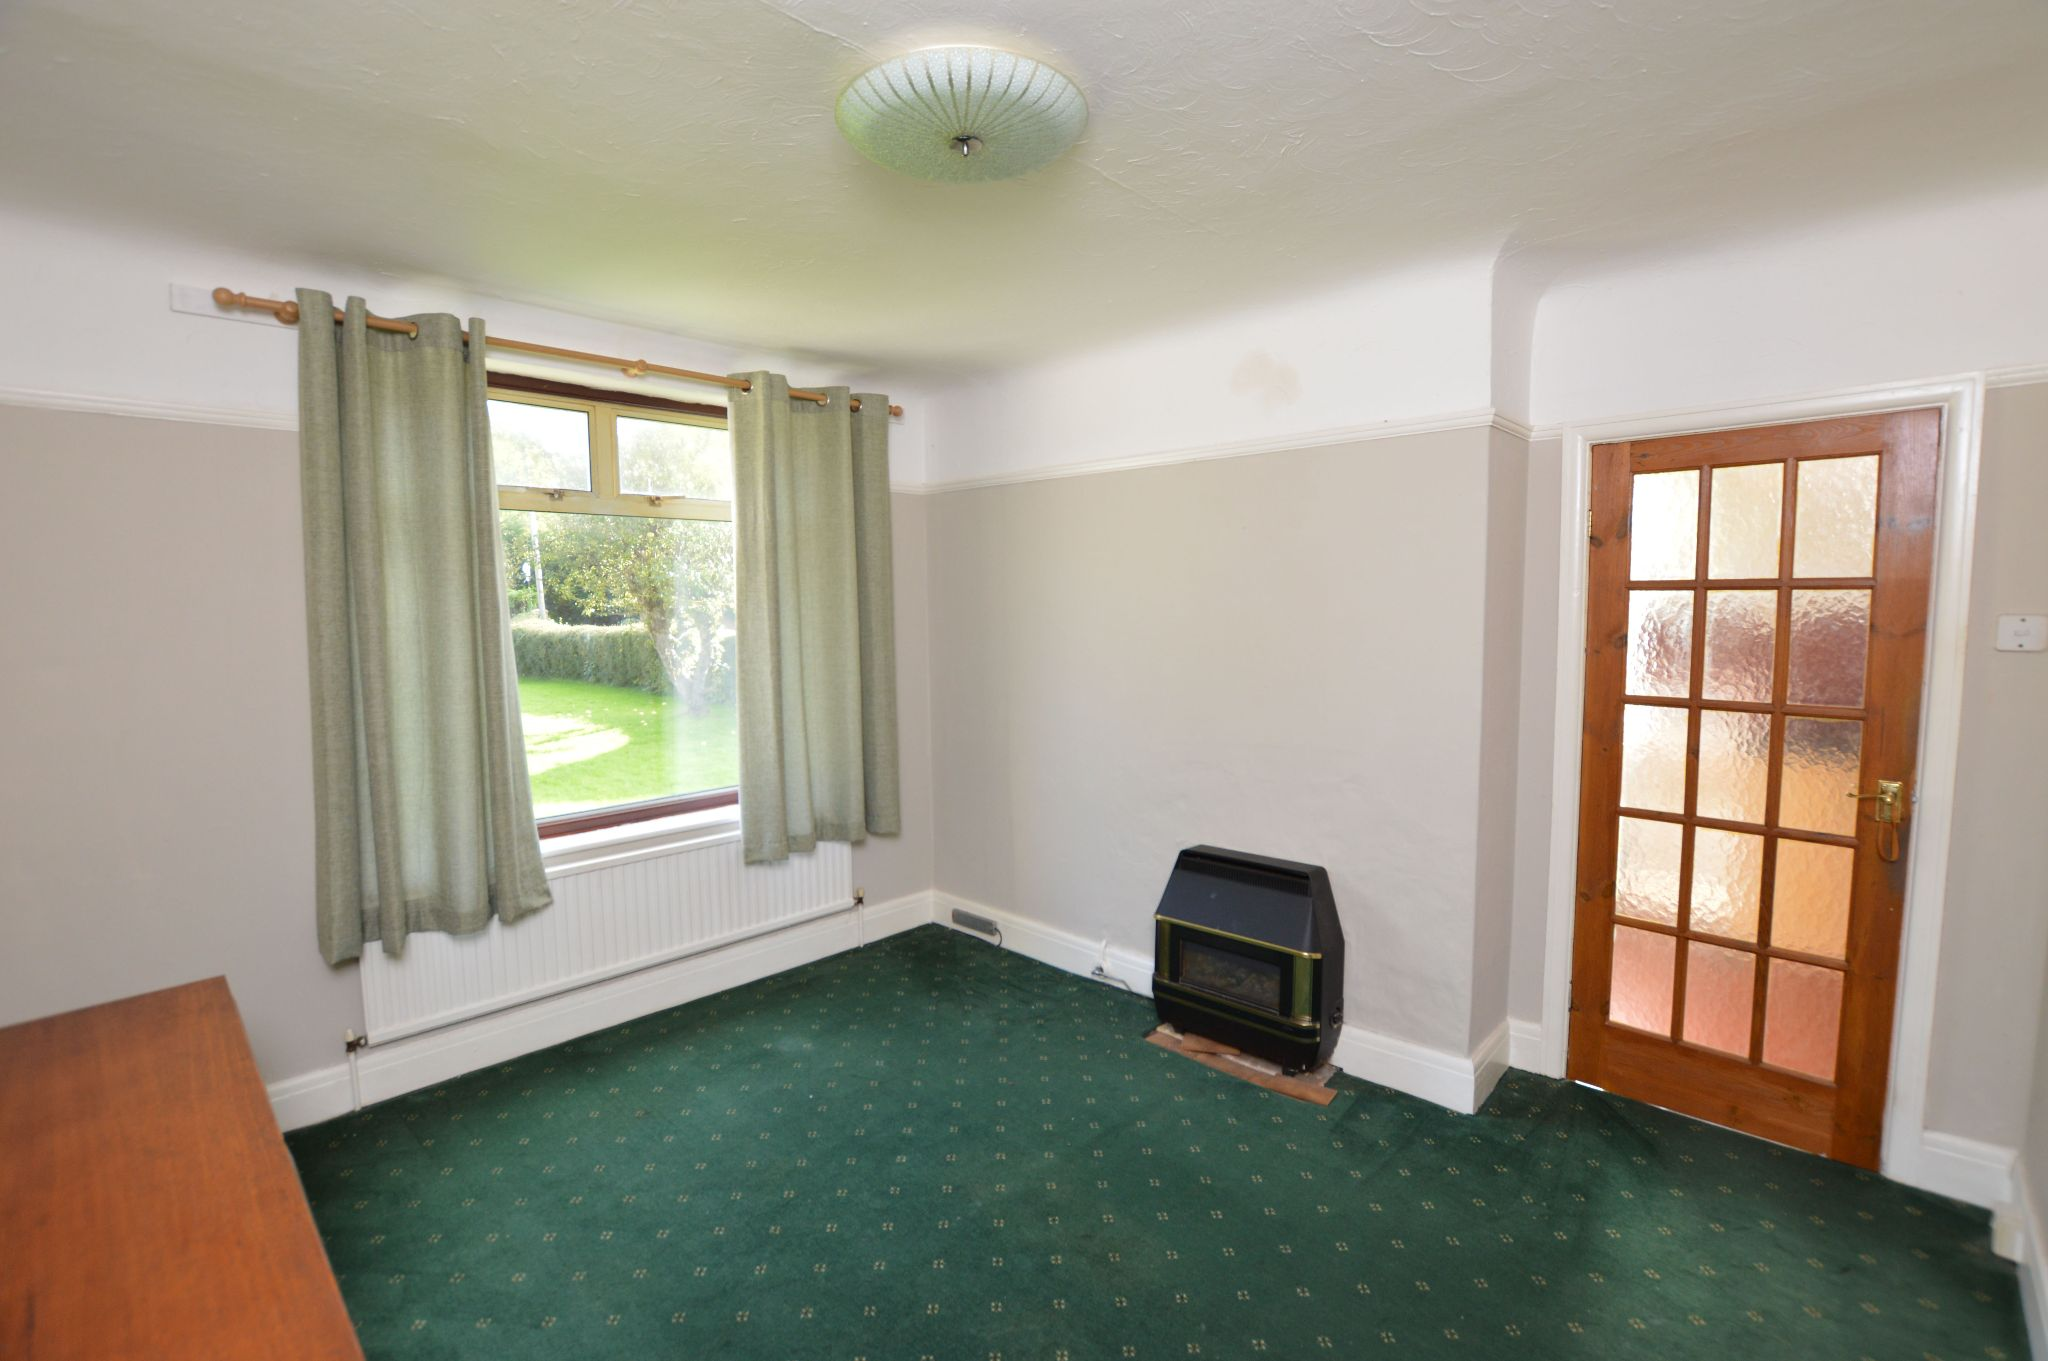 3 bedroom semi-detached house For Sale in Abergele - Dining Room View 3